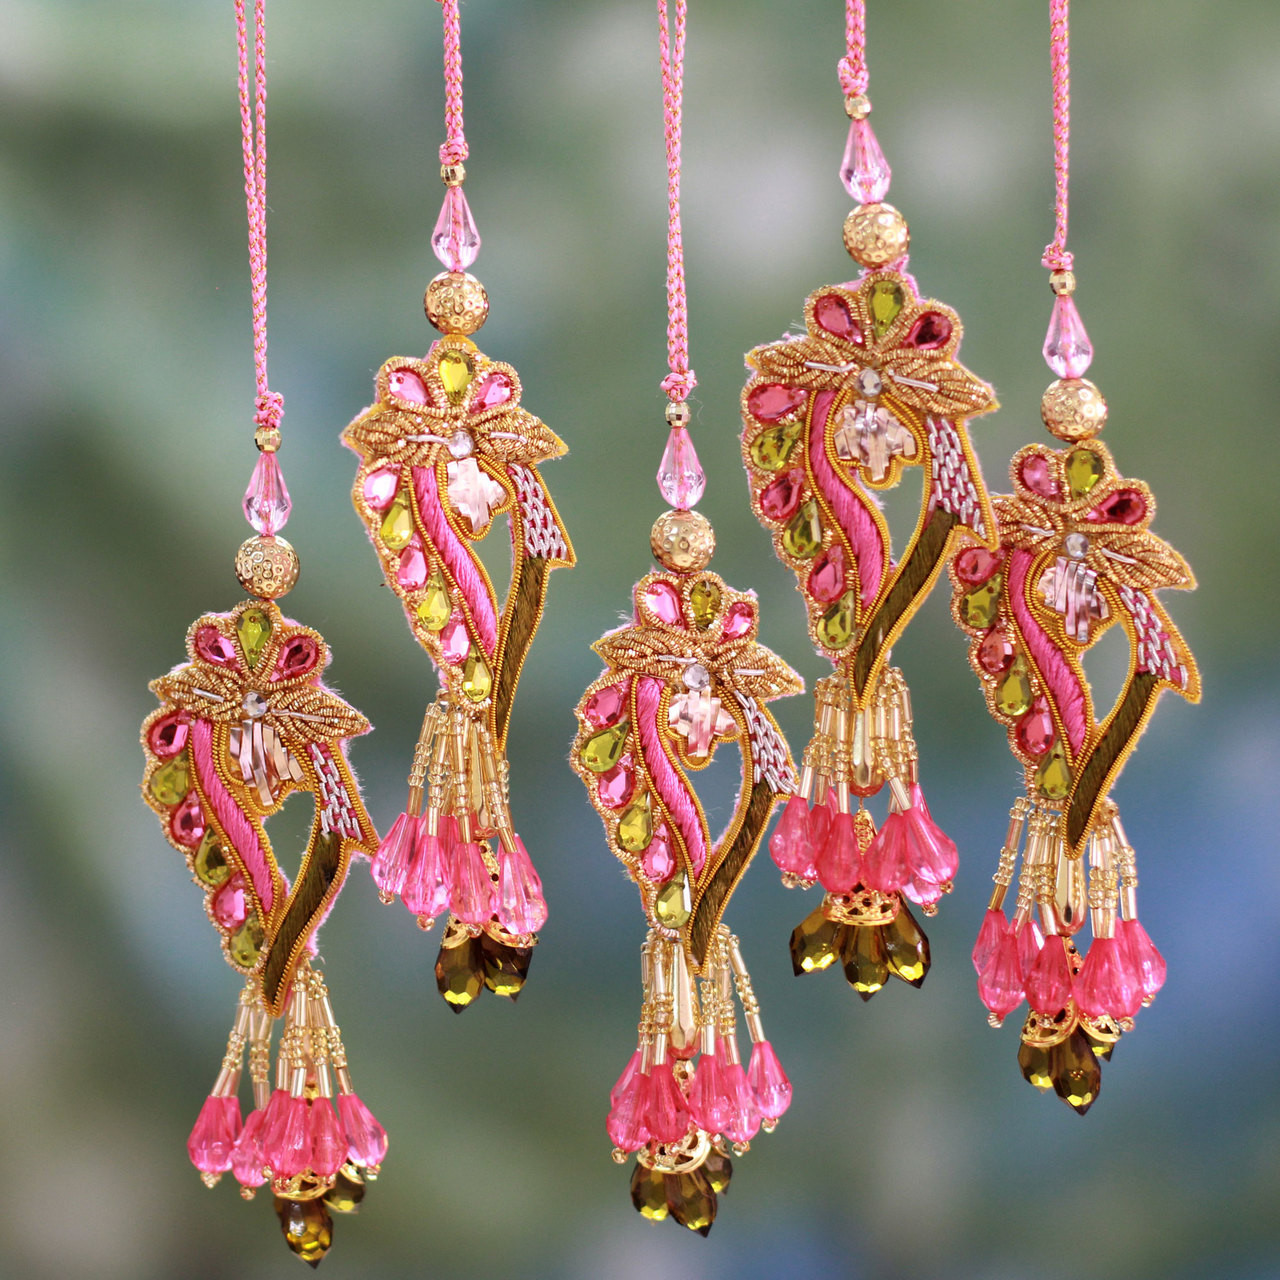 Beaded Christmas Ornaments.Handcrafted Hand Beaded Christmas Ornaments Set Of 5 Lavish Delhi